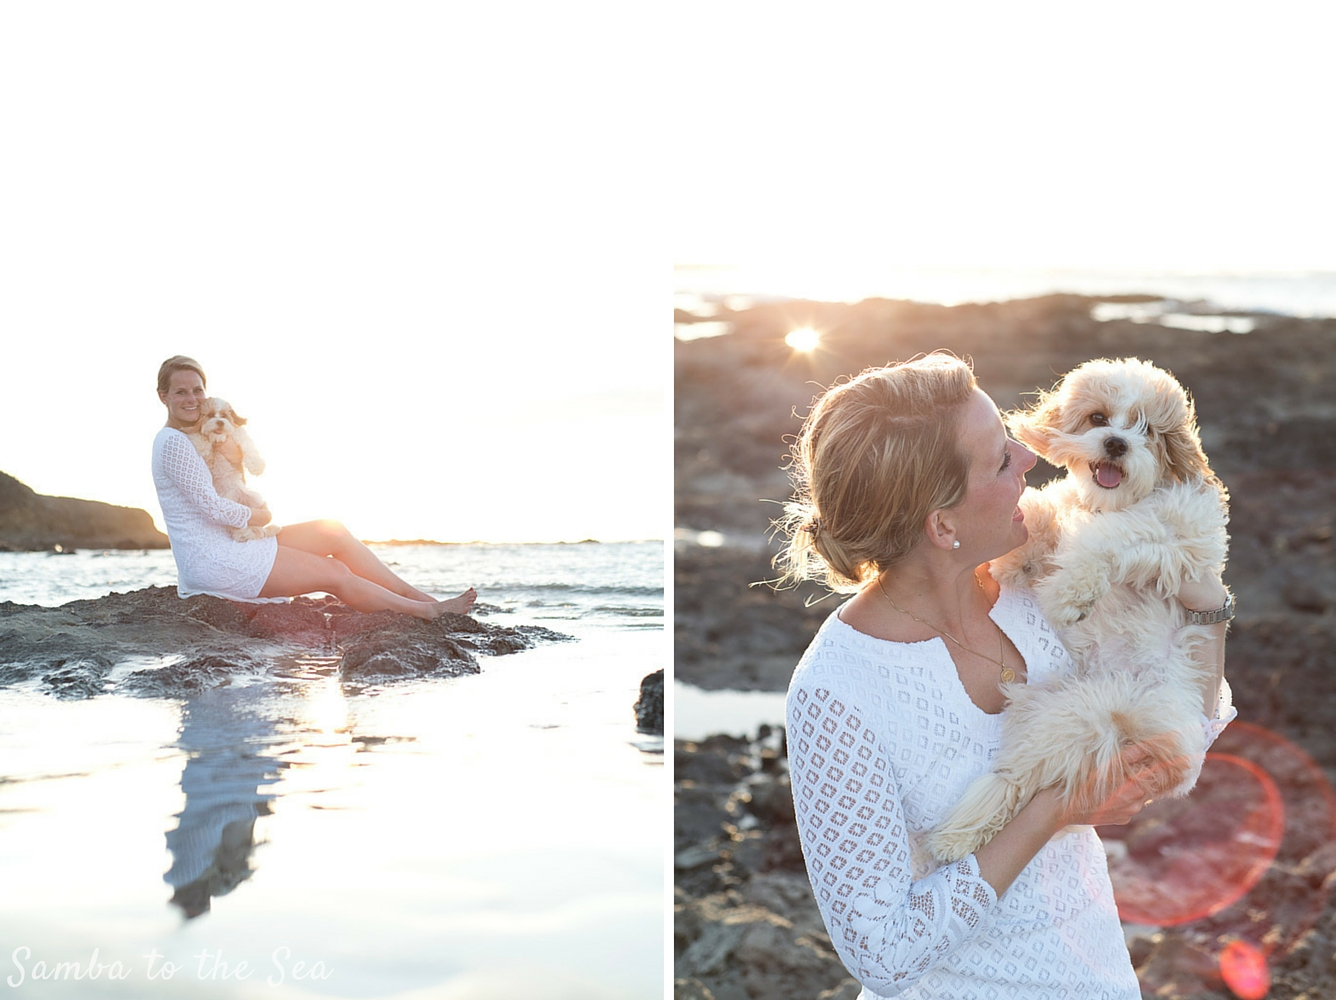 Waffles the Cavapoo and Theresa, wearing the Lilly Pulitzer Mara Scallop Hem Lace Dress, in Tamarindo, Costa Rica. Photographed by Kristen M. Brown, Samba to the Sea Photography.